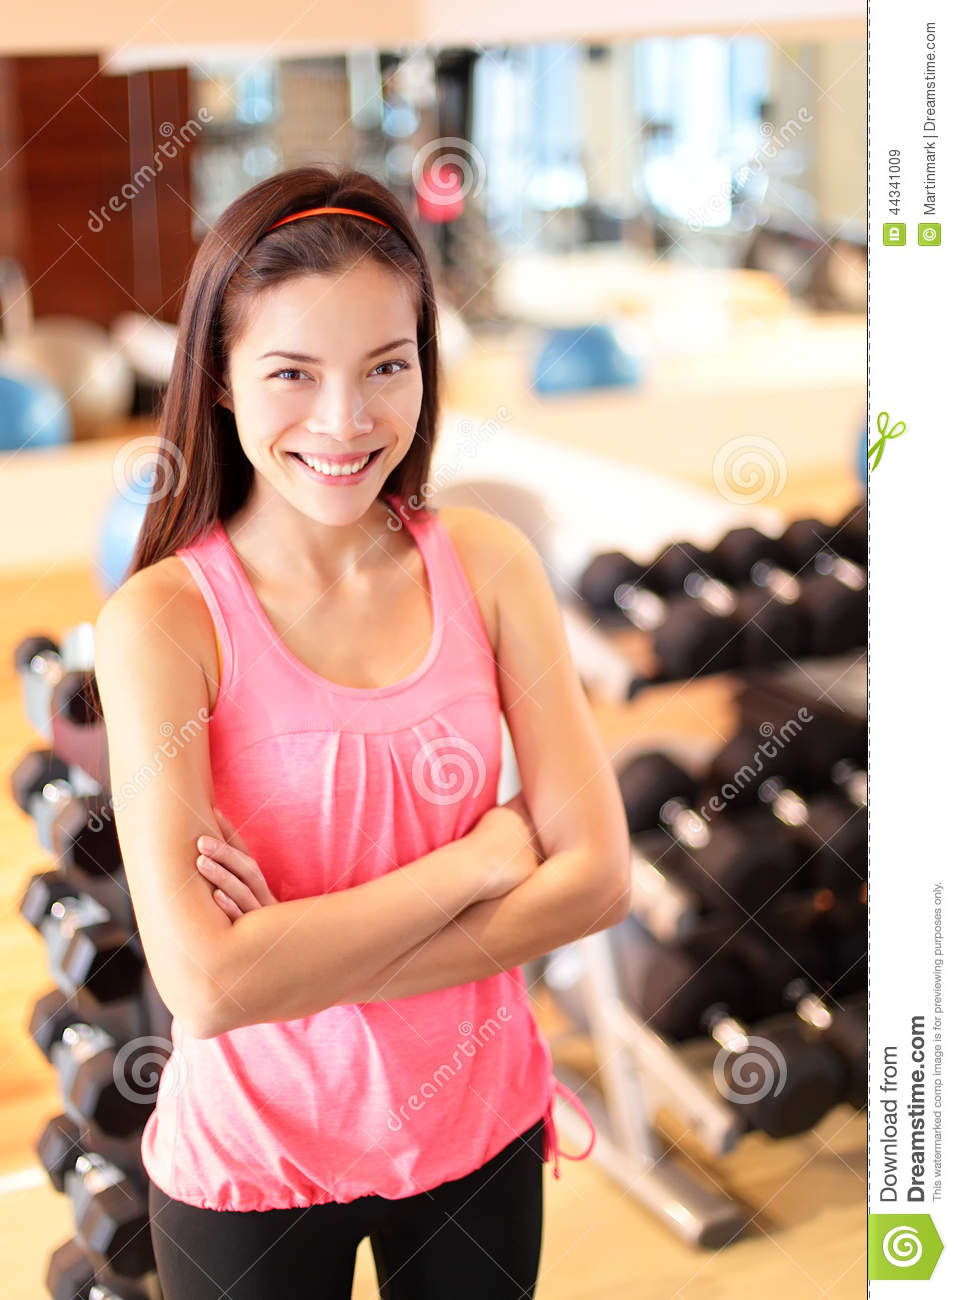 Gym Woman In Fitness Center Proud Portrait Stock Photo